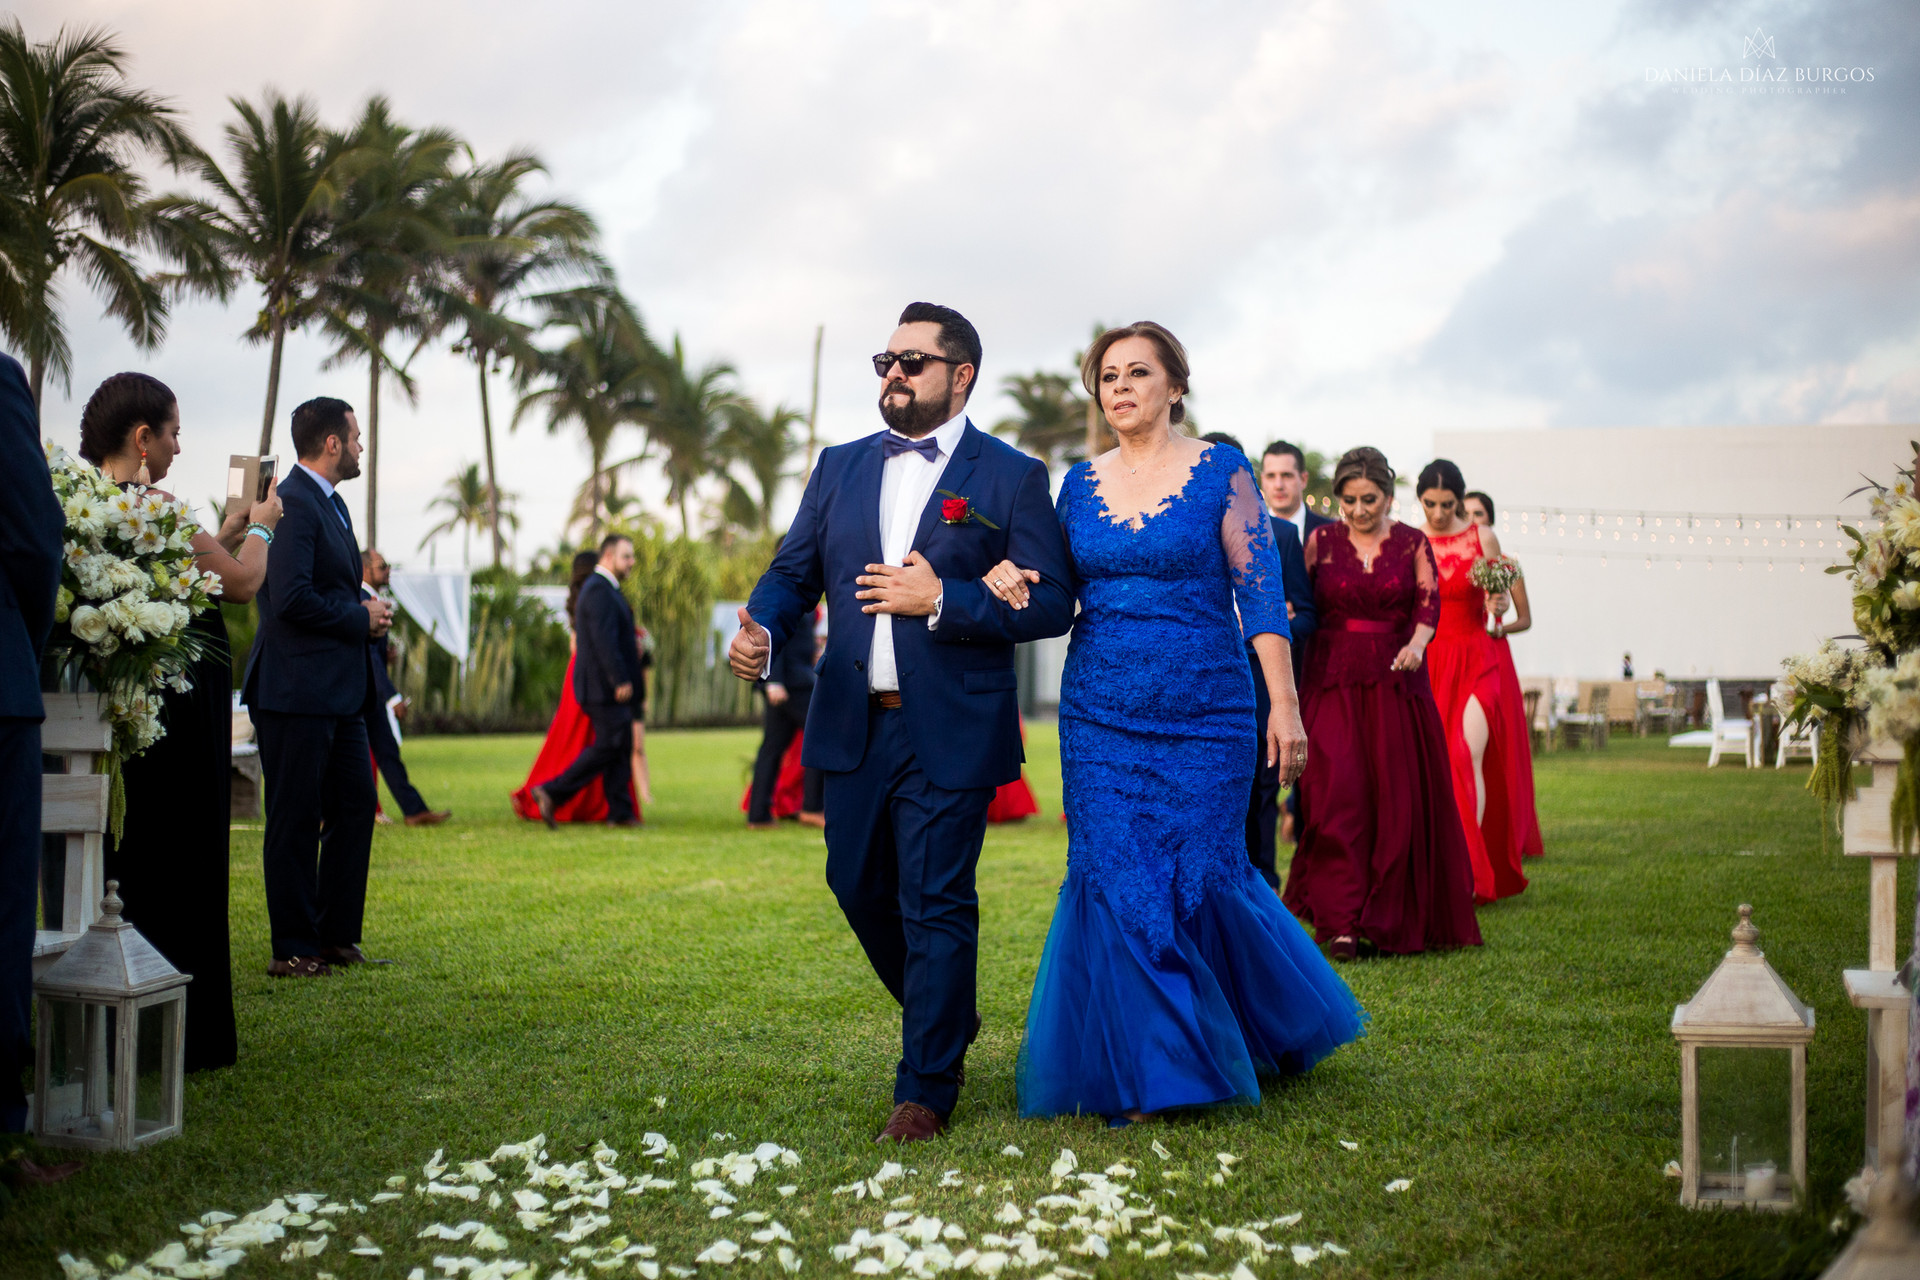 Zuza+Sergio-Wedding-LD-136.jpg